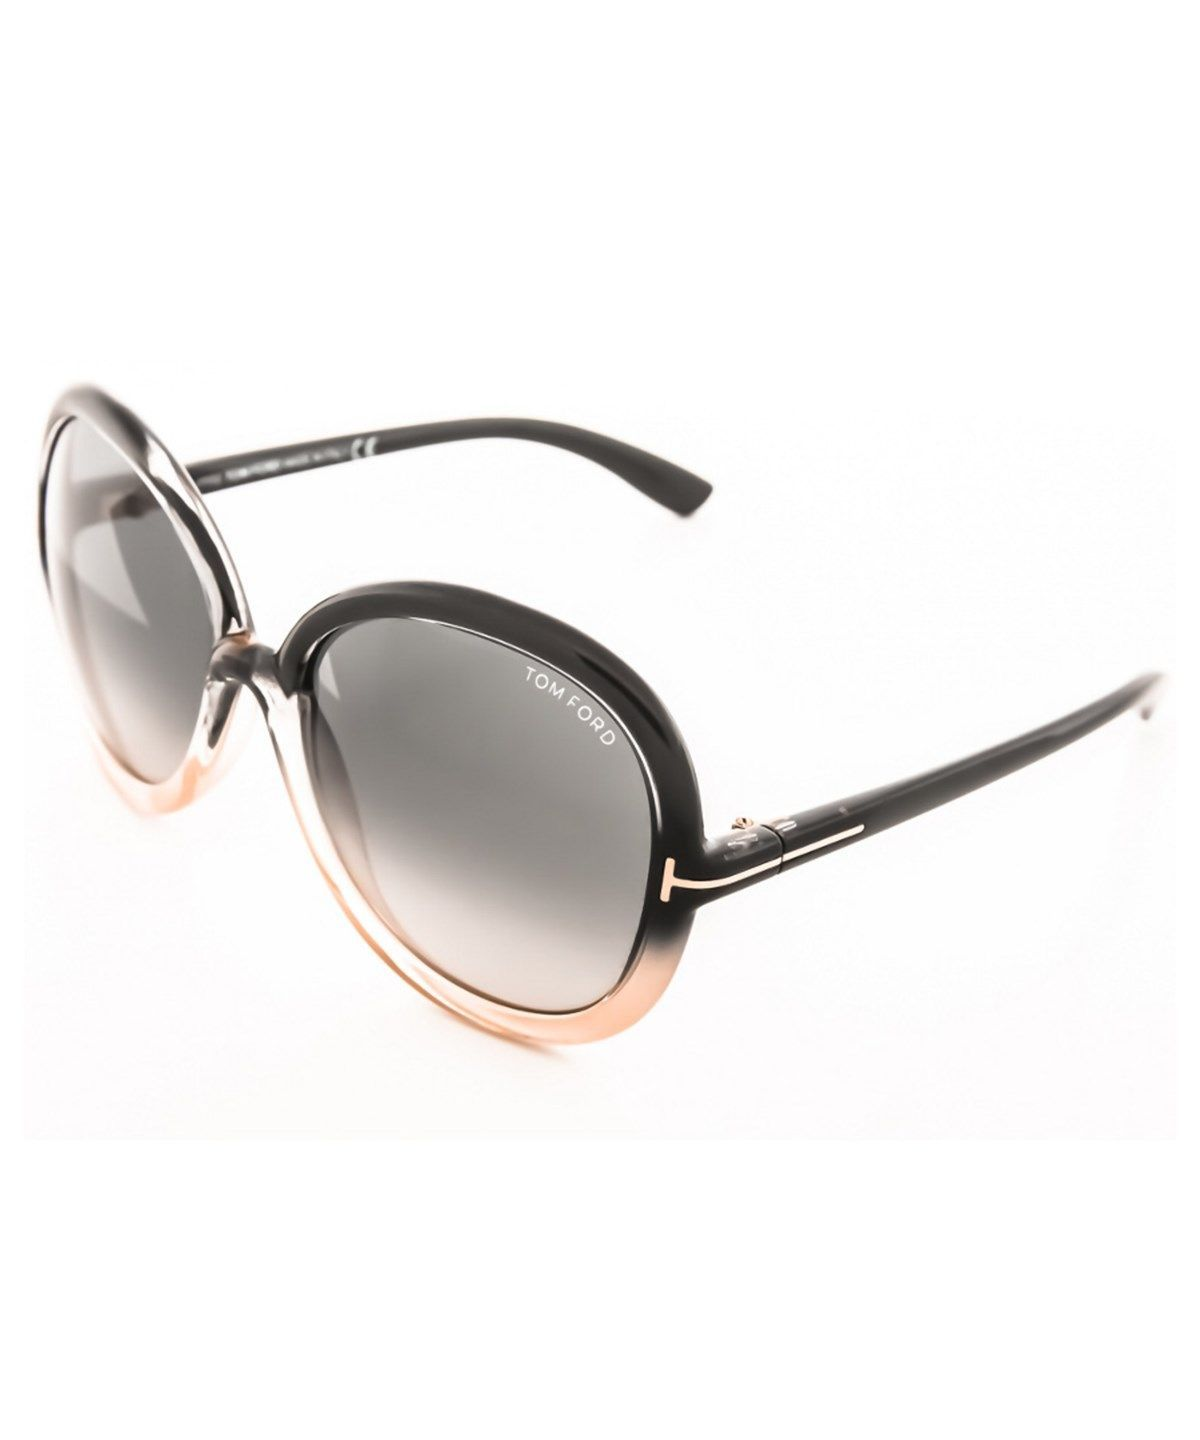 aa517e1eed96d TOM FORD TOM FORD WOMEN S CANDICE SUNGLASSES .  tomford  sunglasses ...